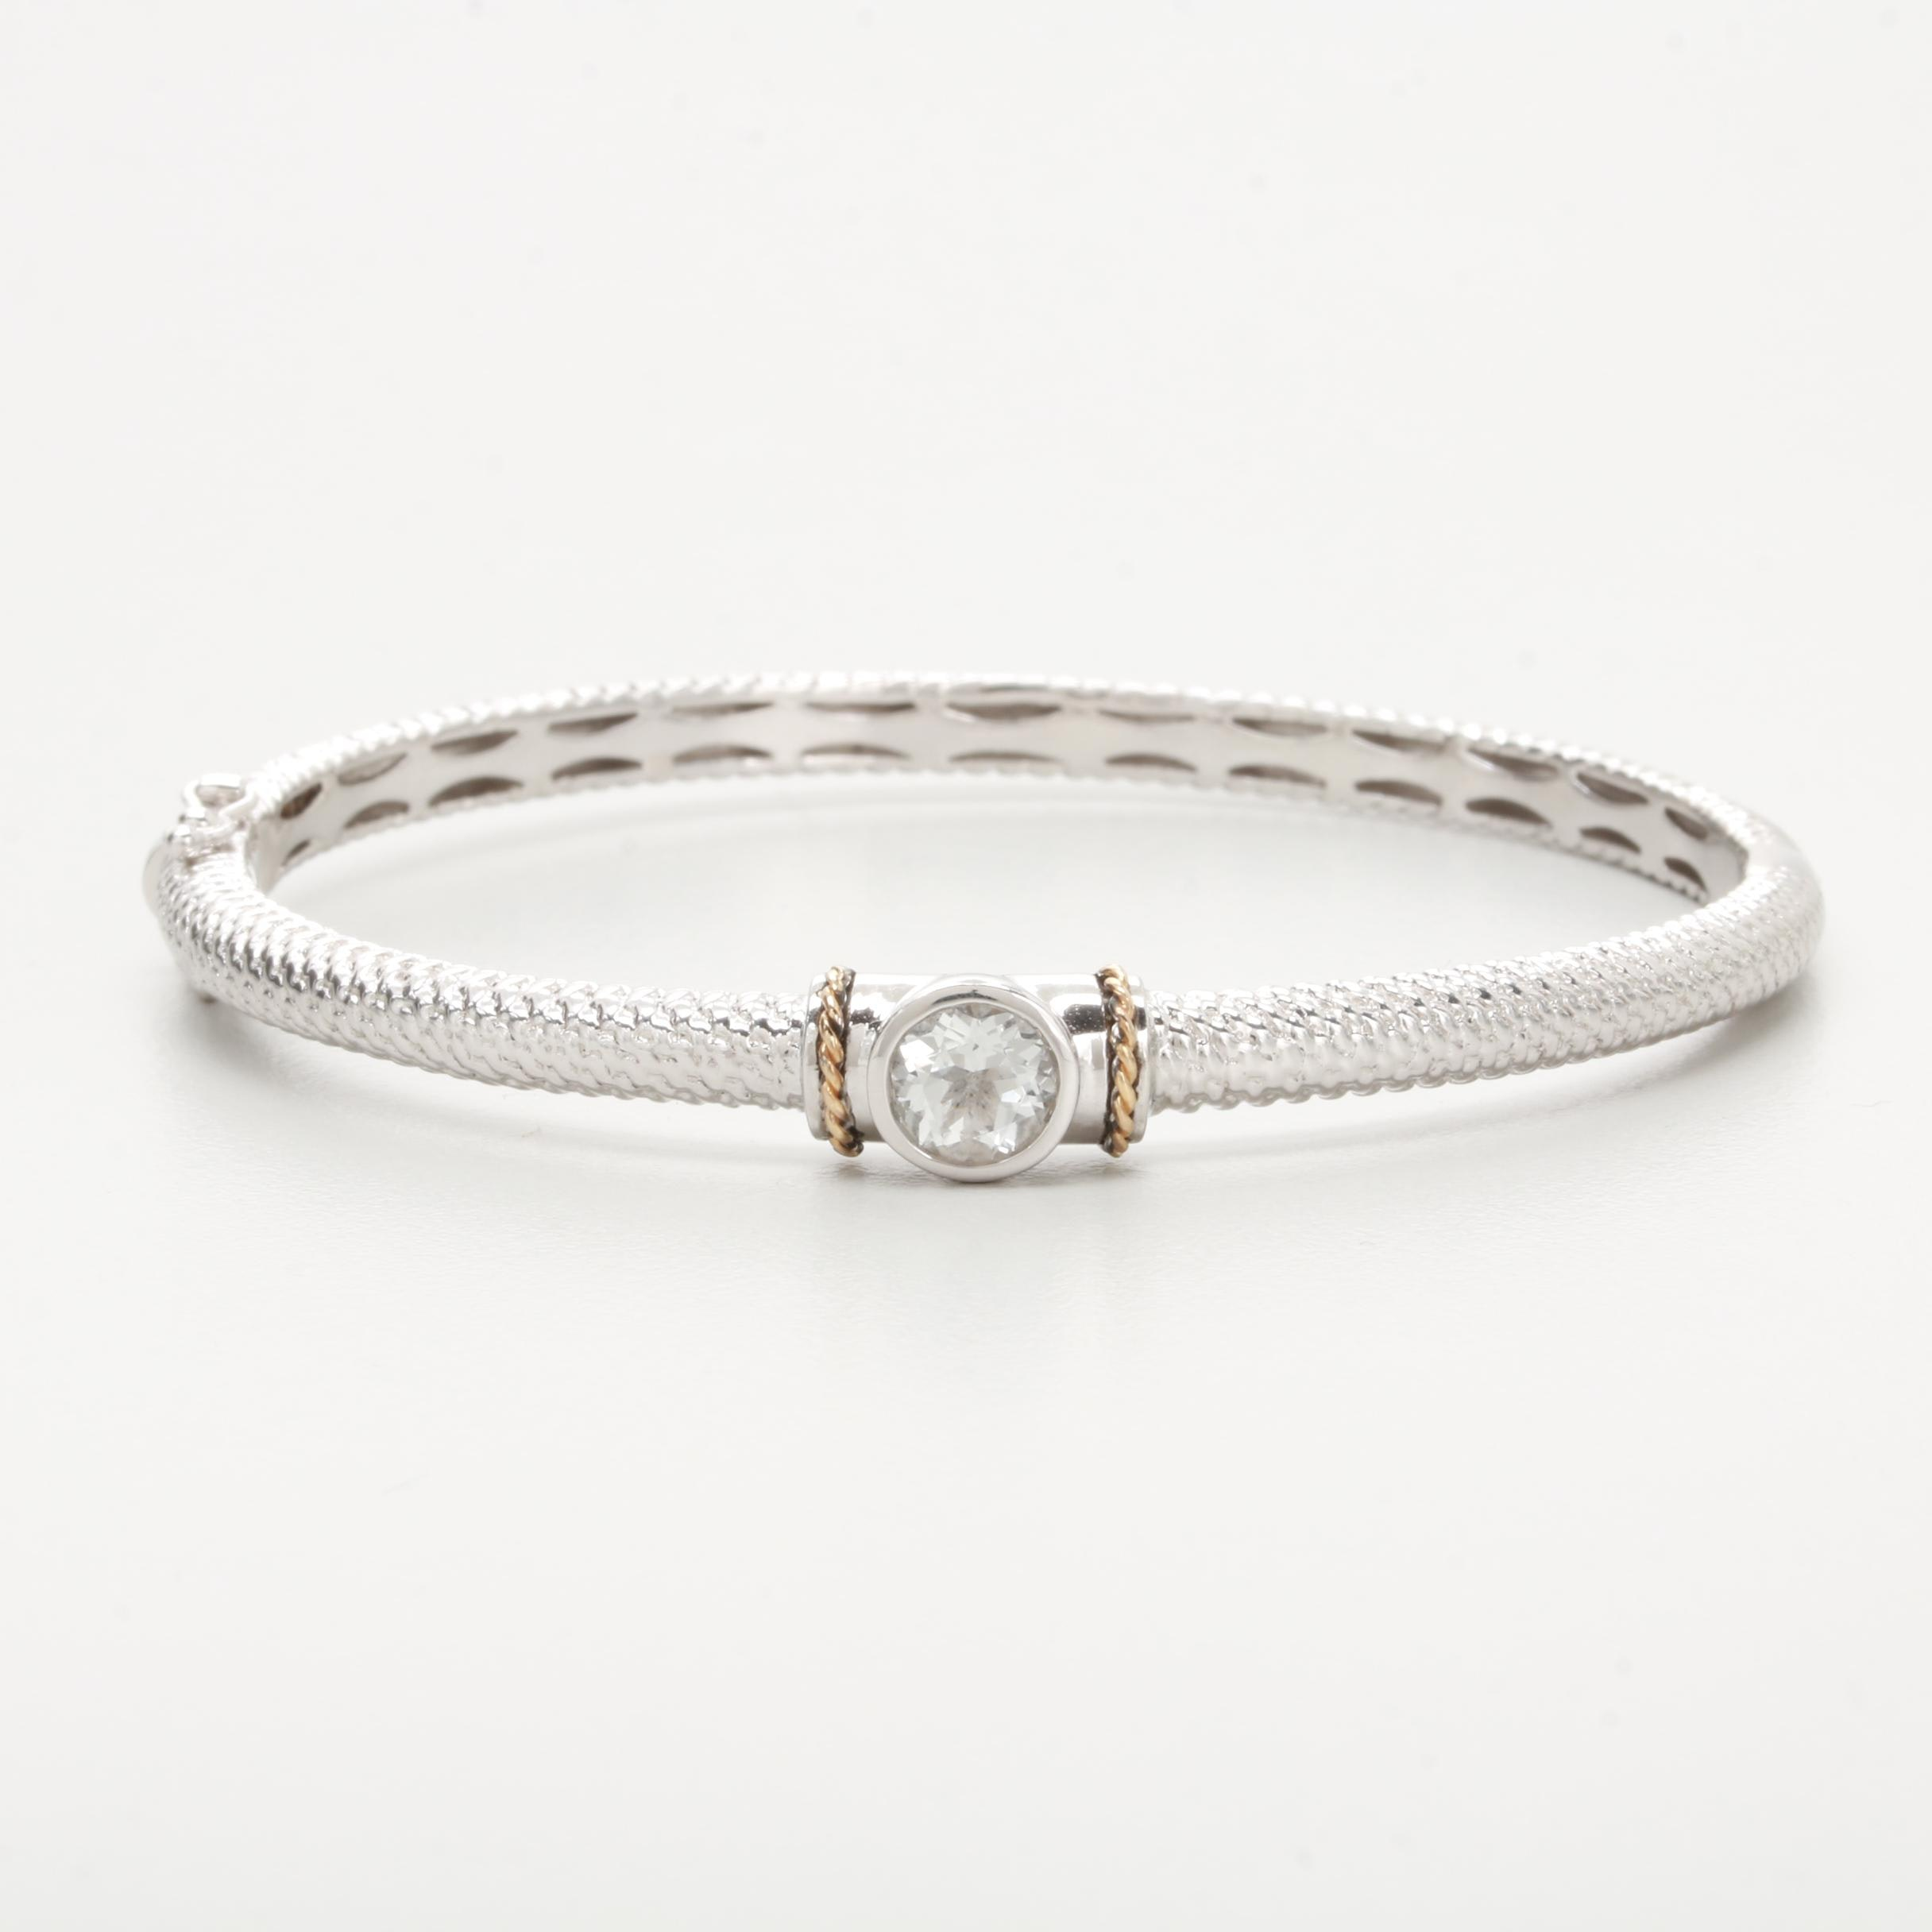 Sterling Silver White Topaz Bracelet with 14K Yellow Gold Accents